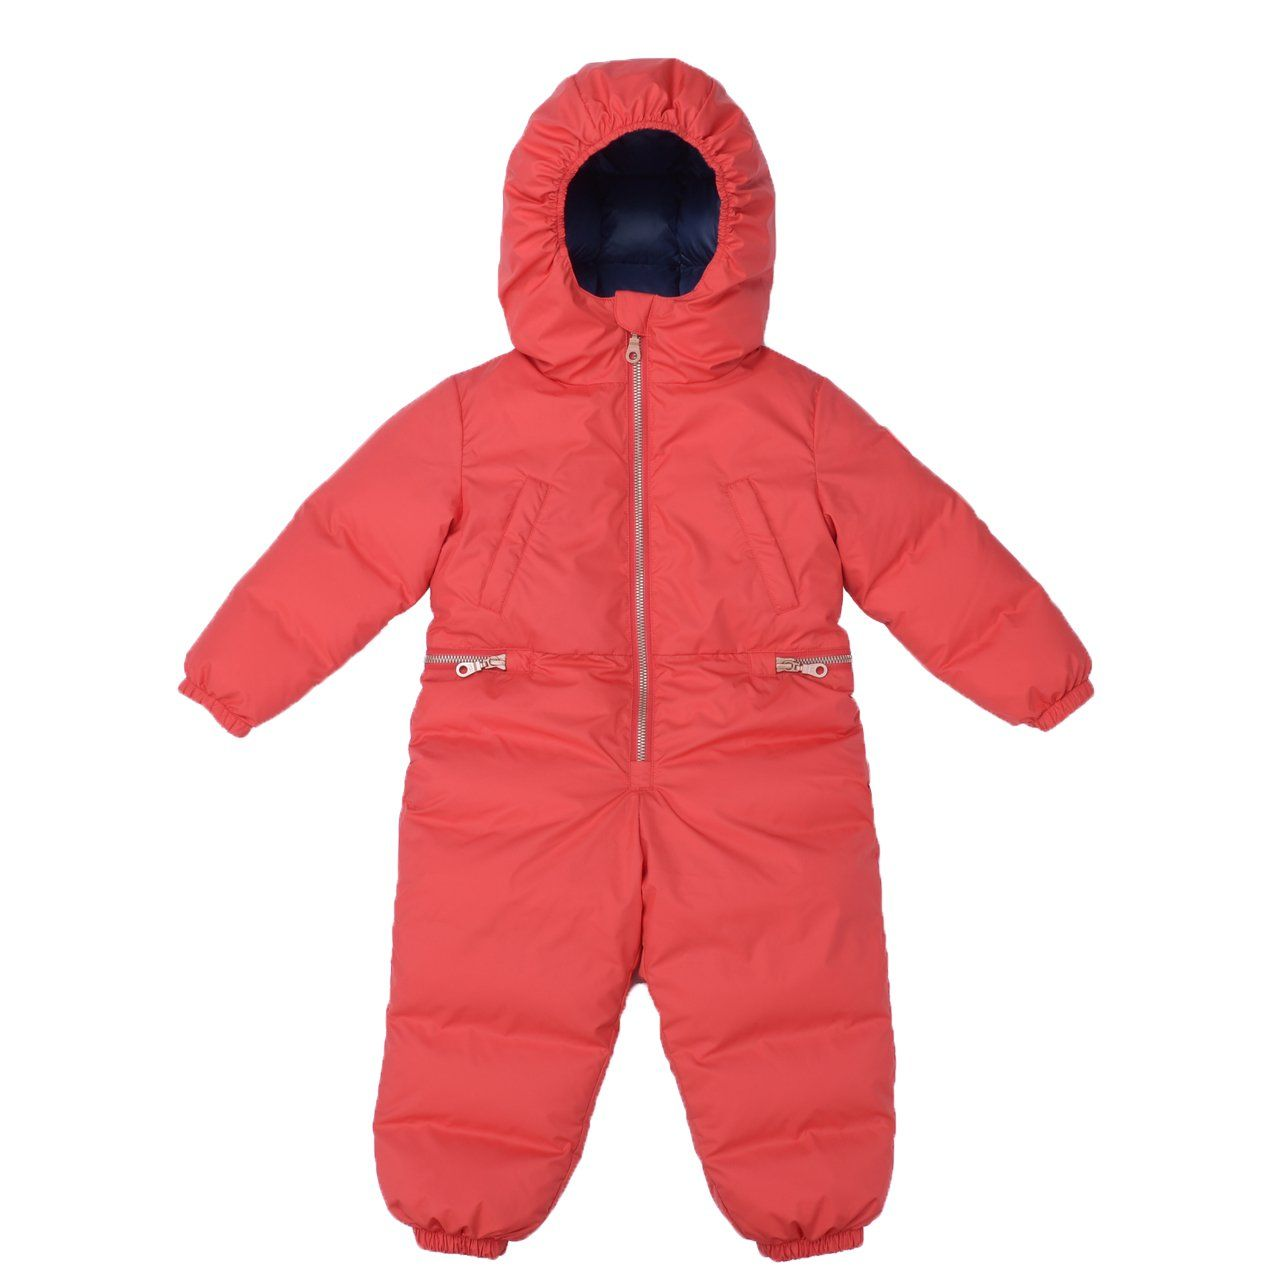 Nanny Mcphee Baby Snowsuit Winter Baby Boys Girls Snuggly Bunny Bunting Kids Puffer Jumpsuit 8 12 Months 1 7 Year Winter Baby Clothes Baby Winter Baby Snowsuit